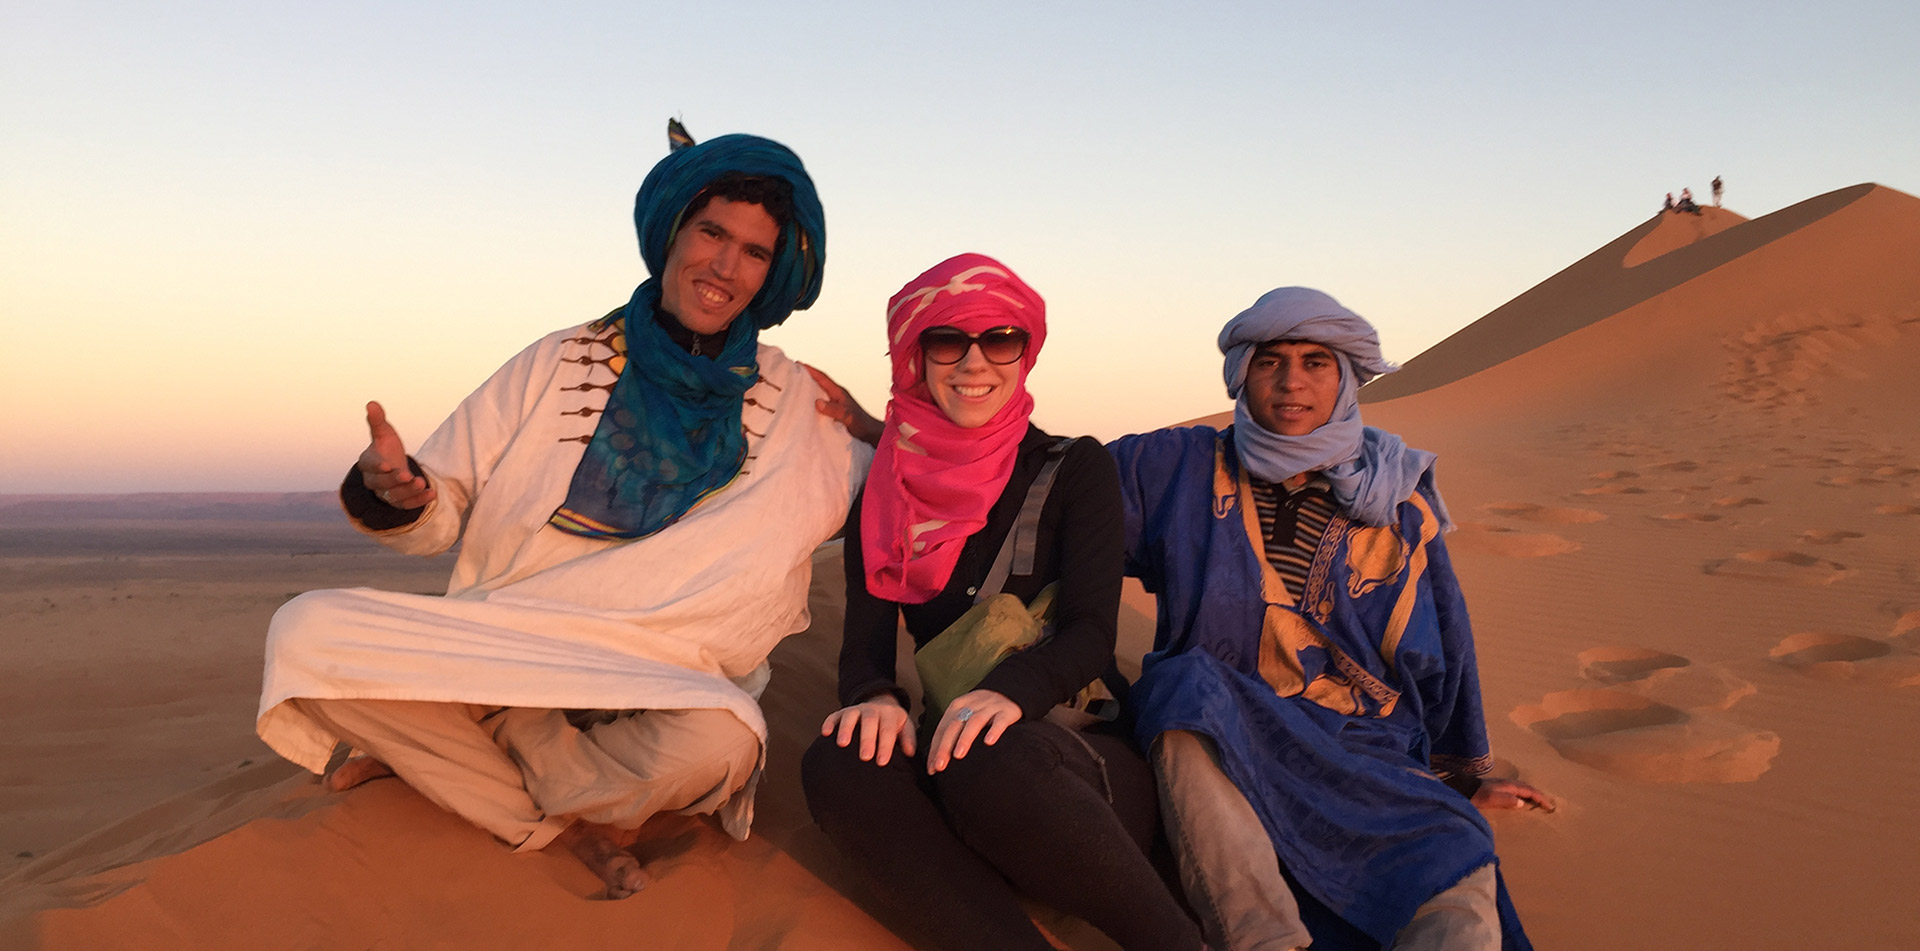 Group of Travelers in Sand Dunes of Morocco